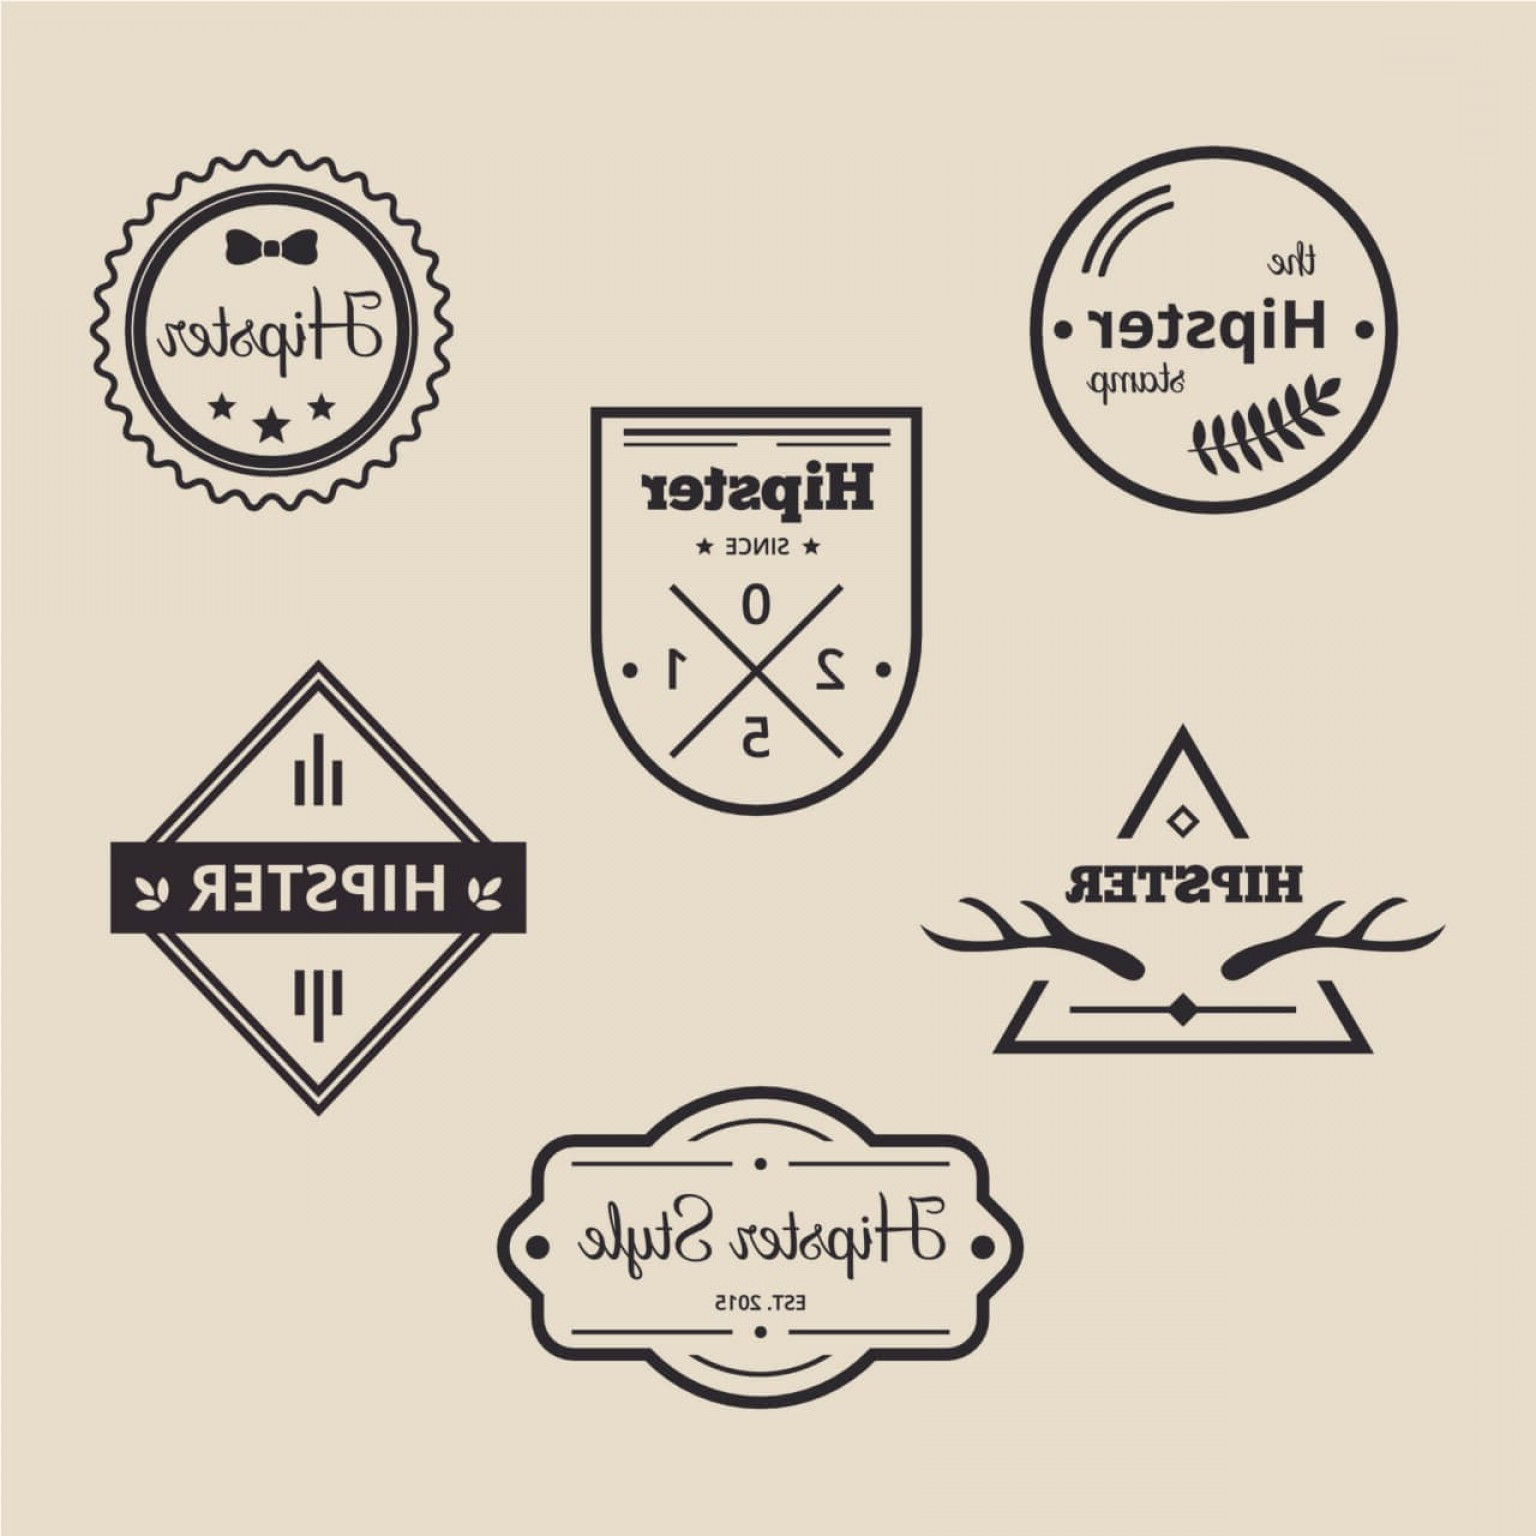 Hipster Logo Vectors Mountain: Retro Vintage Icons Or Logotypes Set Vector Design Elements Business Signs Logos Identity Labels Badges And Objects